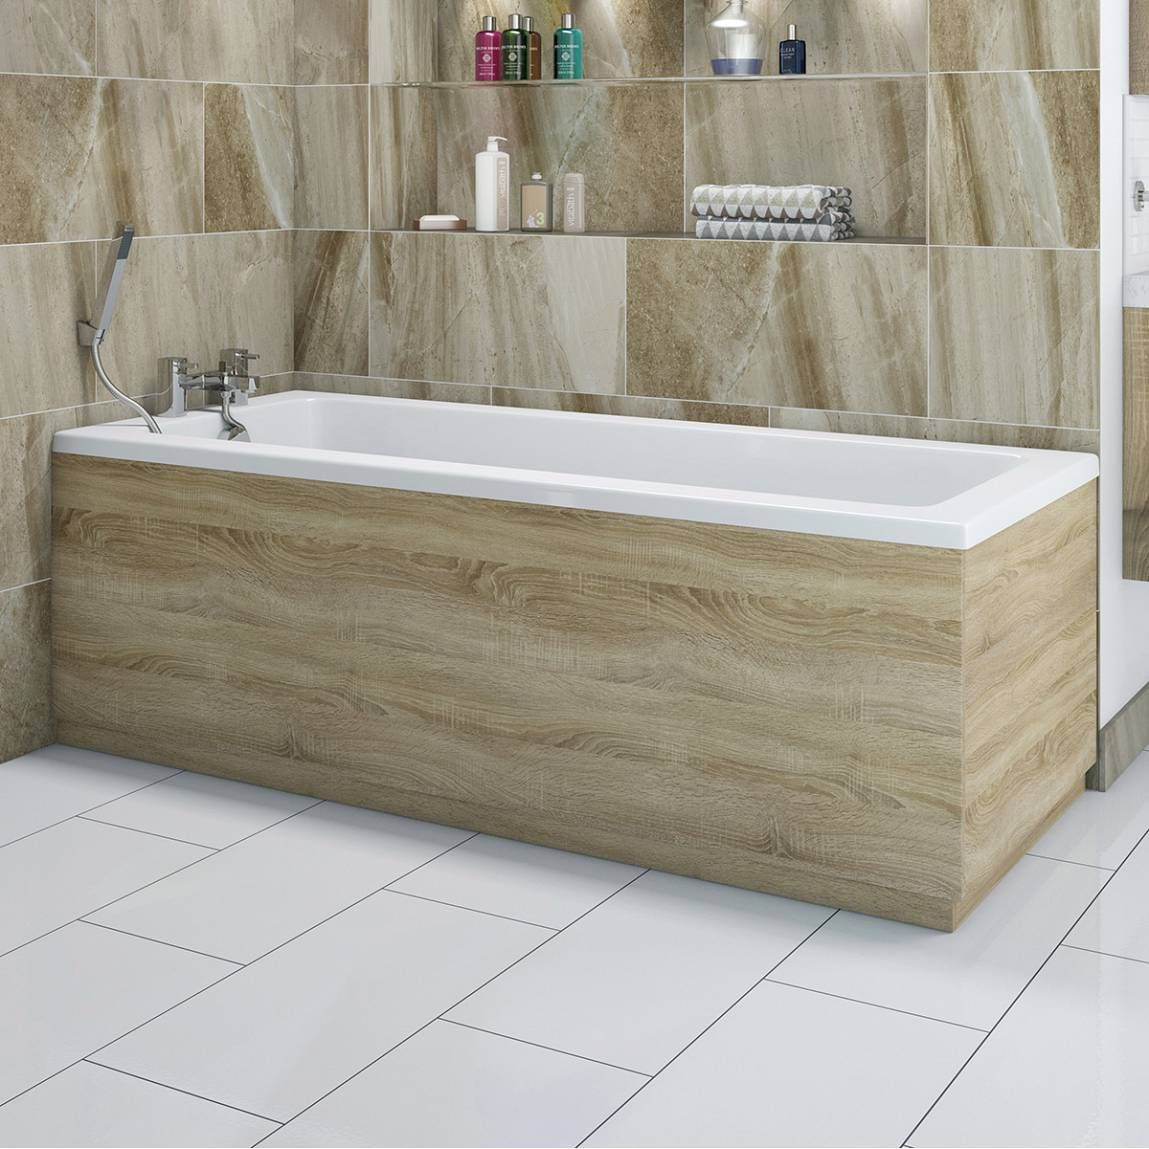 Drift oak wooden bath front panel 1700mm bath side panel for Bathroom designs no bathtub